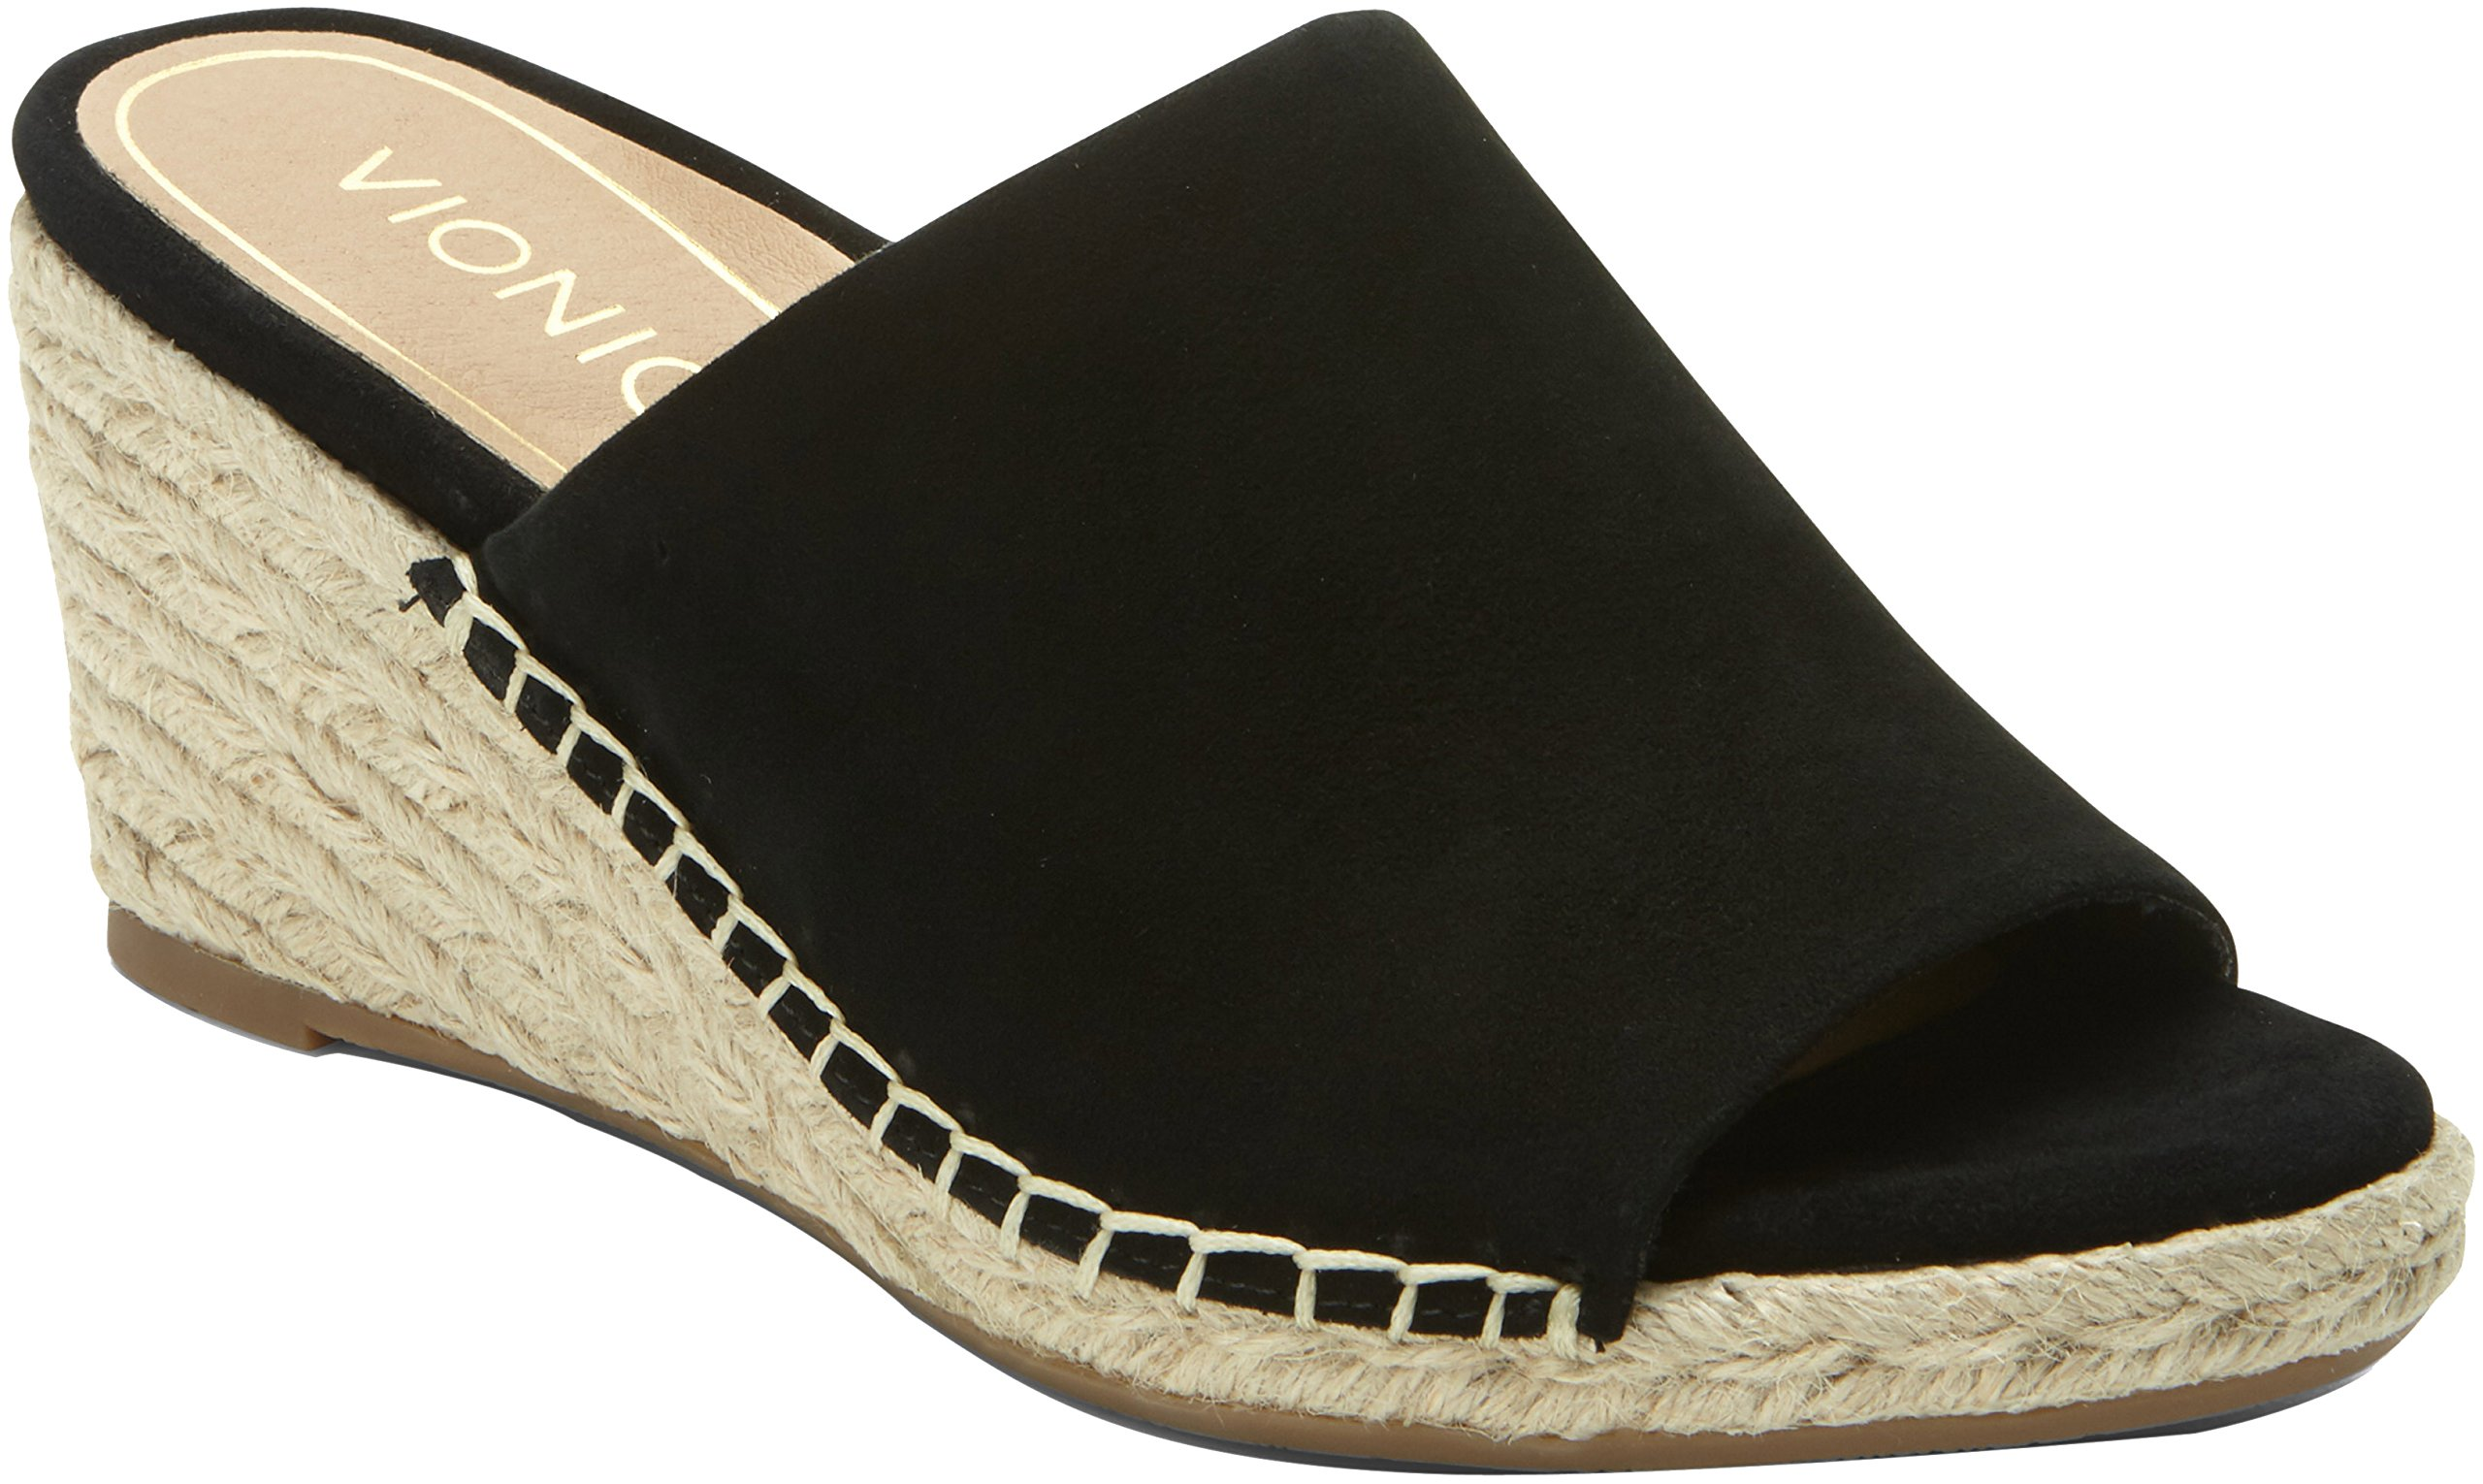 Vionic Tulum Kadyn - Womens Wedge Slip-On Sandal Black - 9 Medium